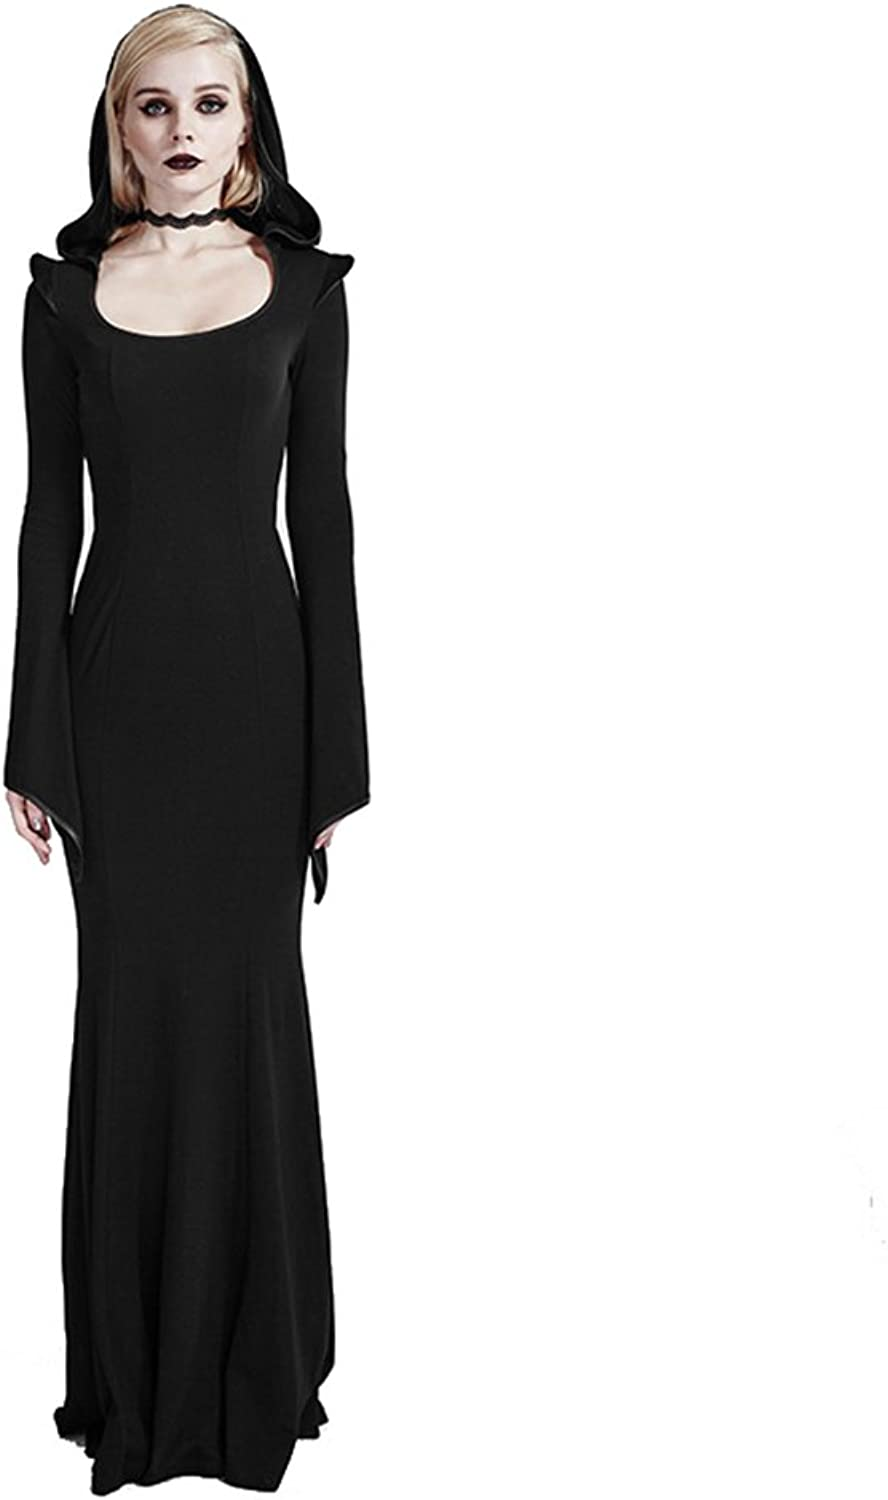 Gothic Punk Womens Hood Long Maxi Dresses Victorian Gowns Party Dress Halloween